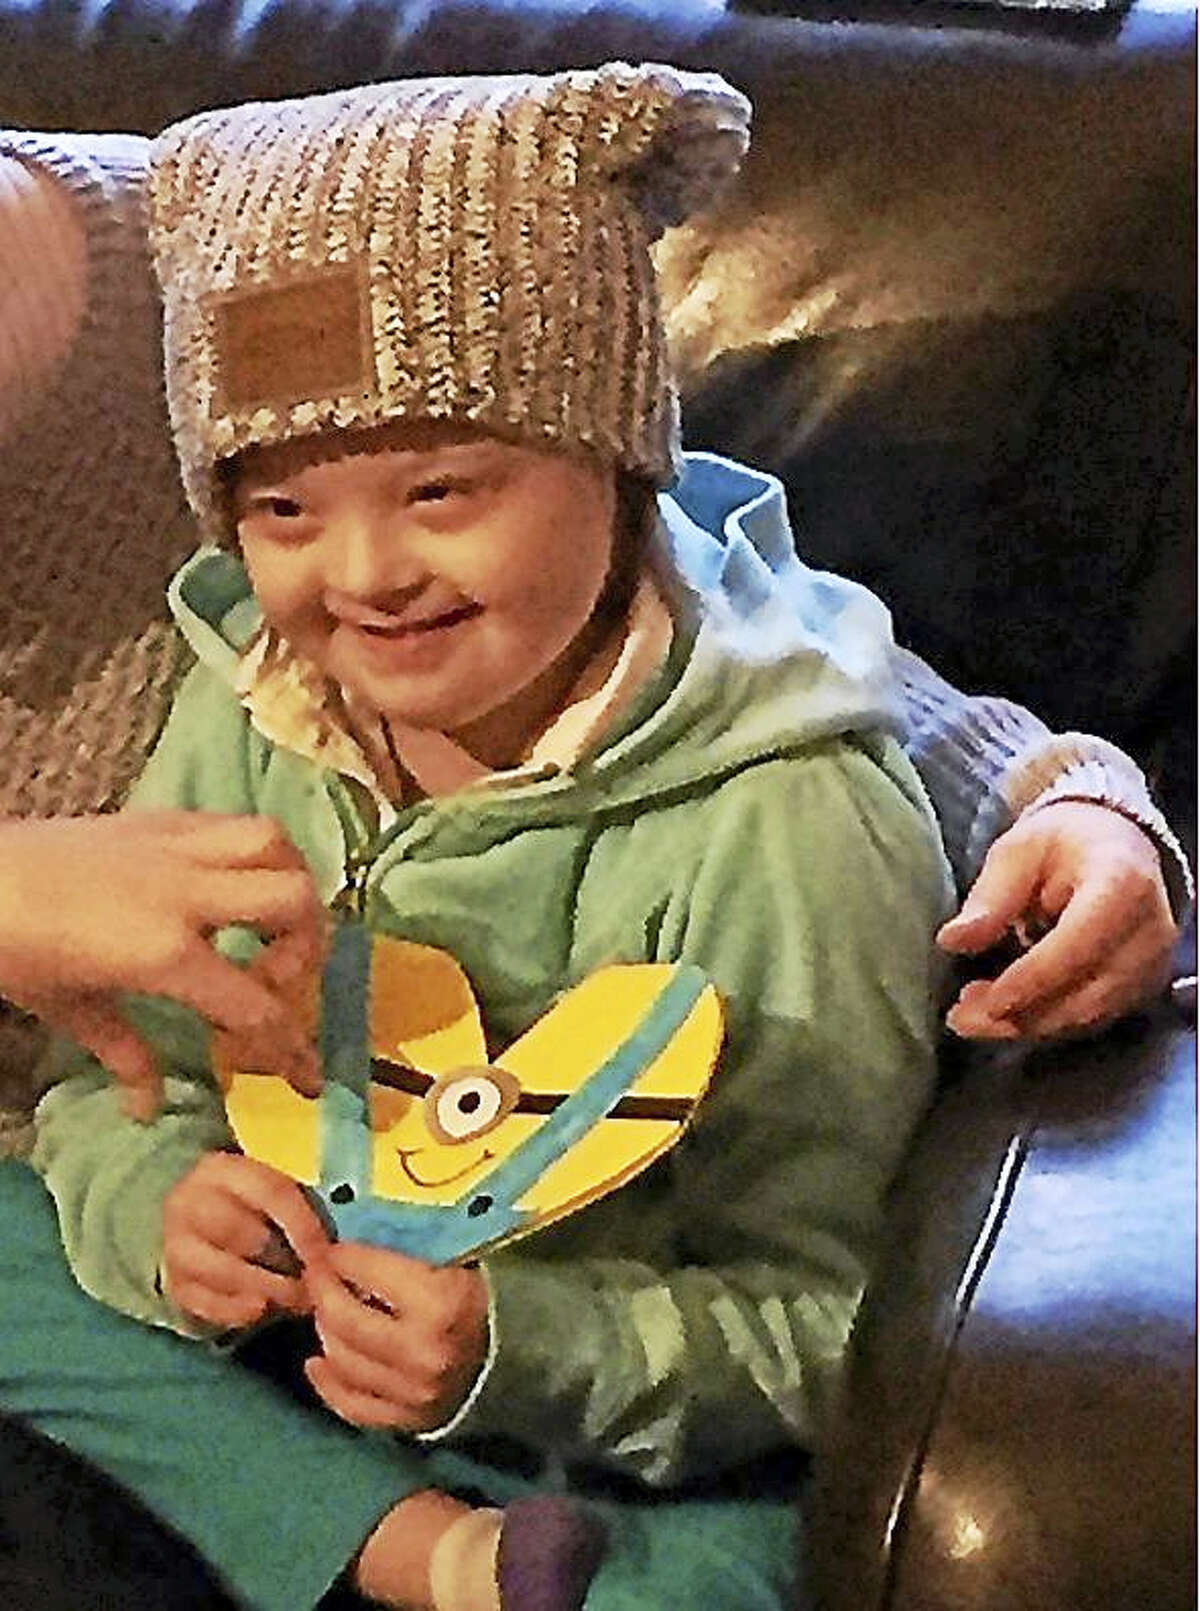 Chloe Mason-Mann and her family are thankful to the community for helping them financially and in so many other ways through her battle with leukemia, now in remission.